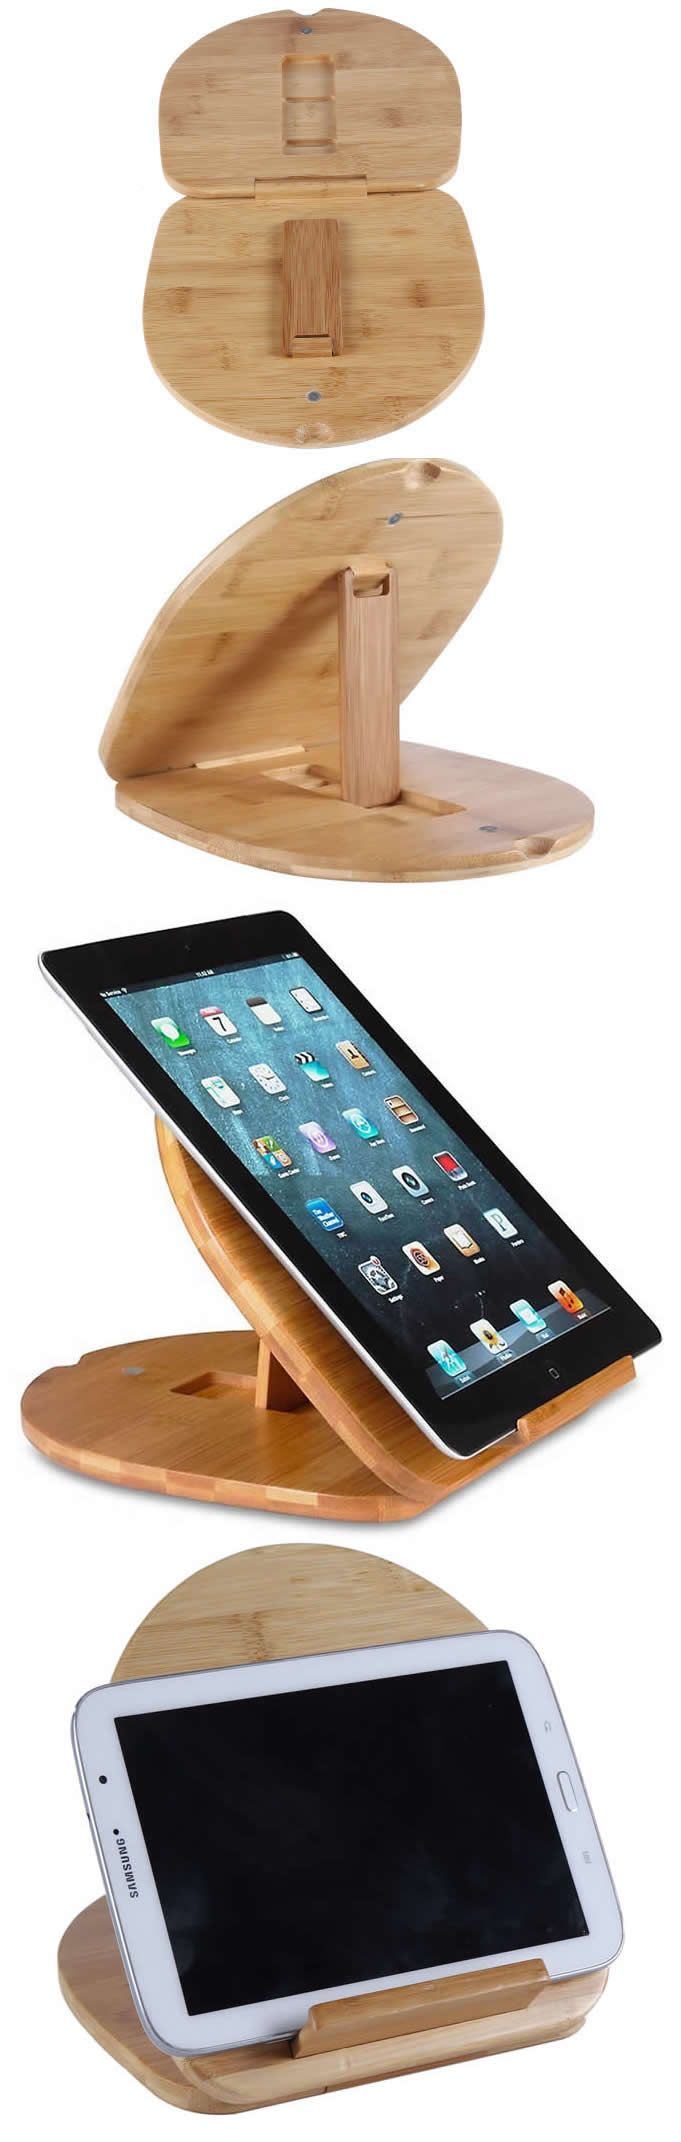 Bamboo Adjustable Tablet Stand for Apple iPad and phones